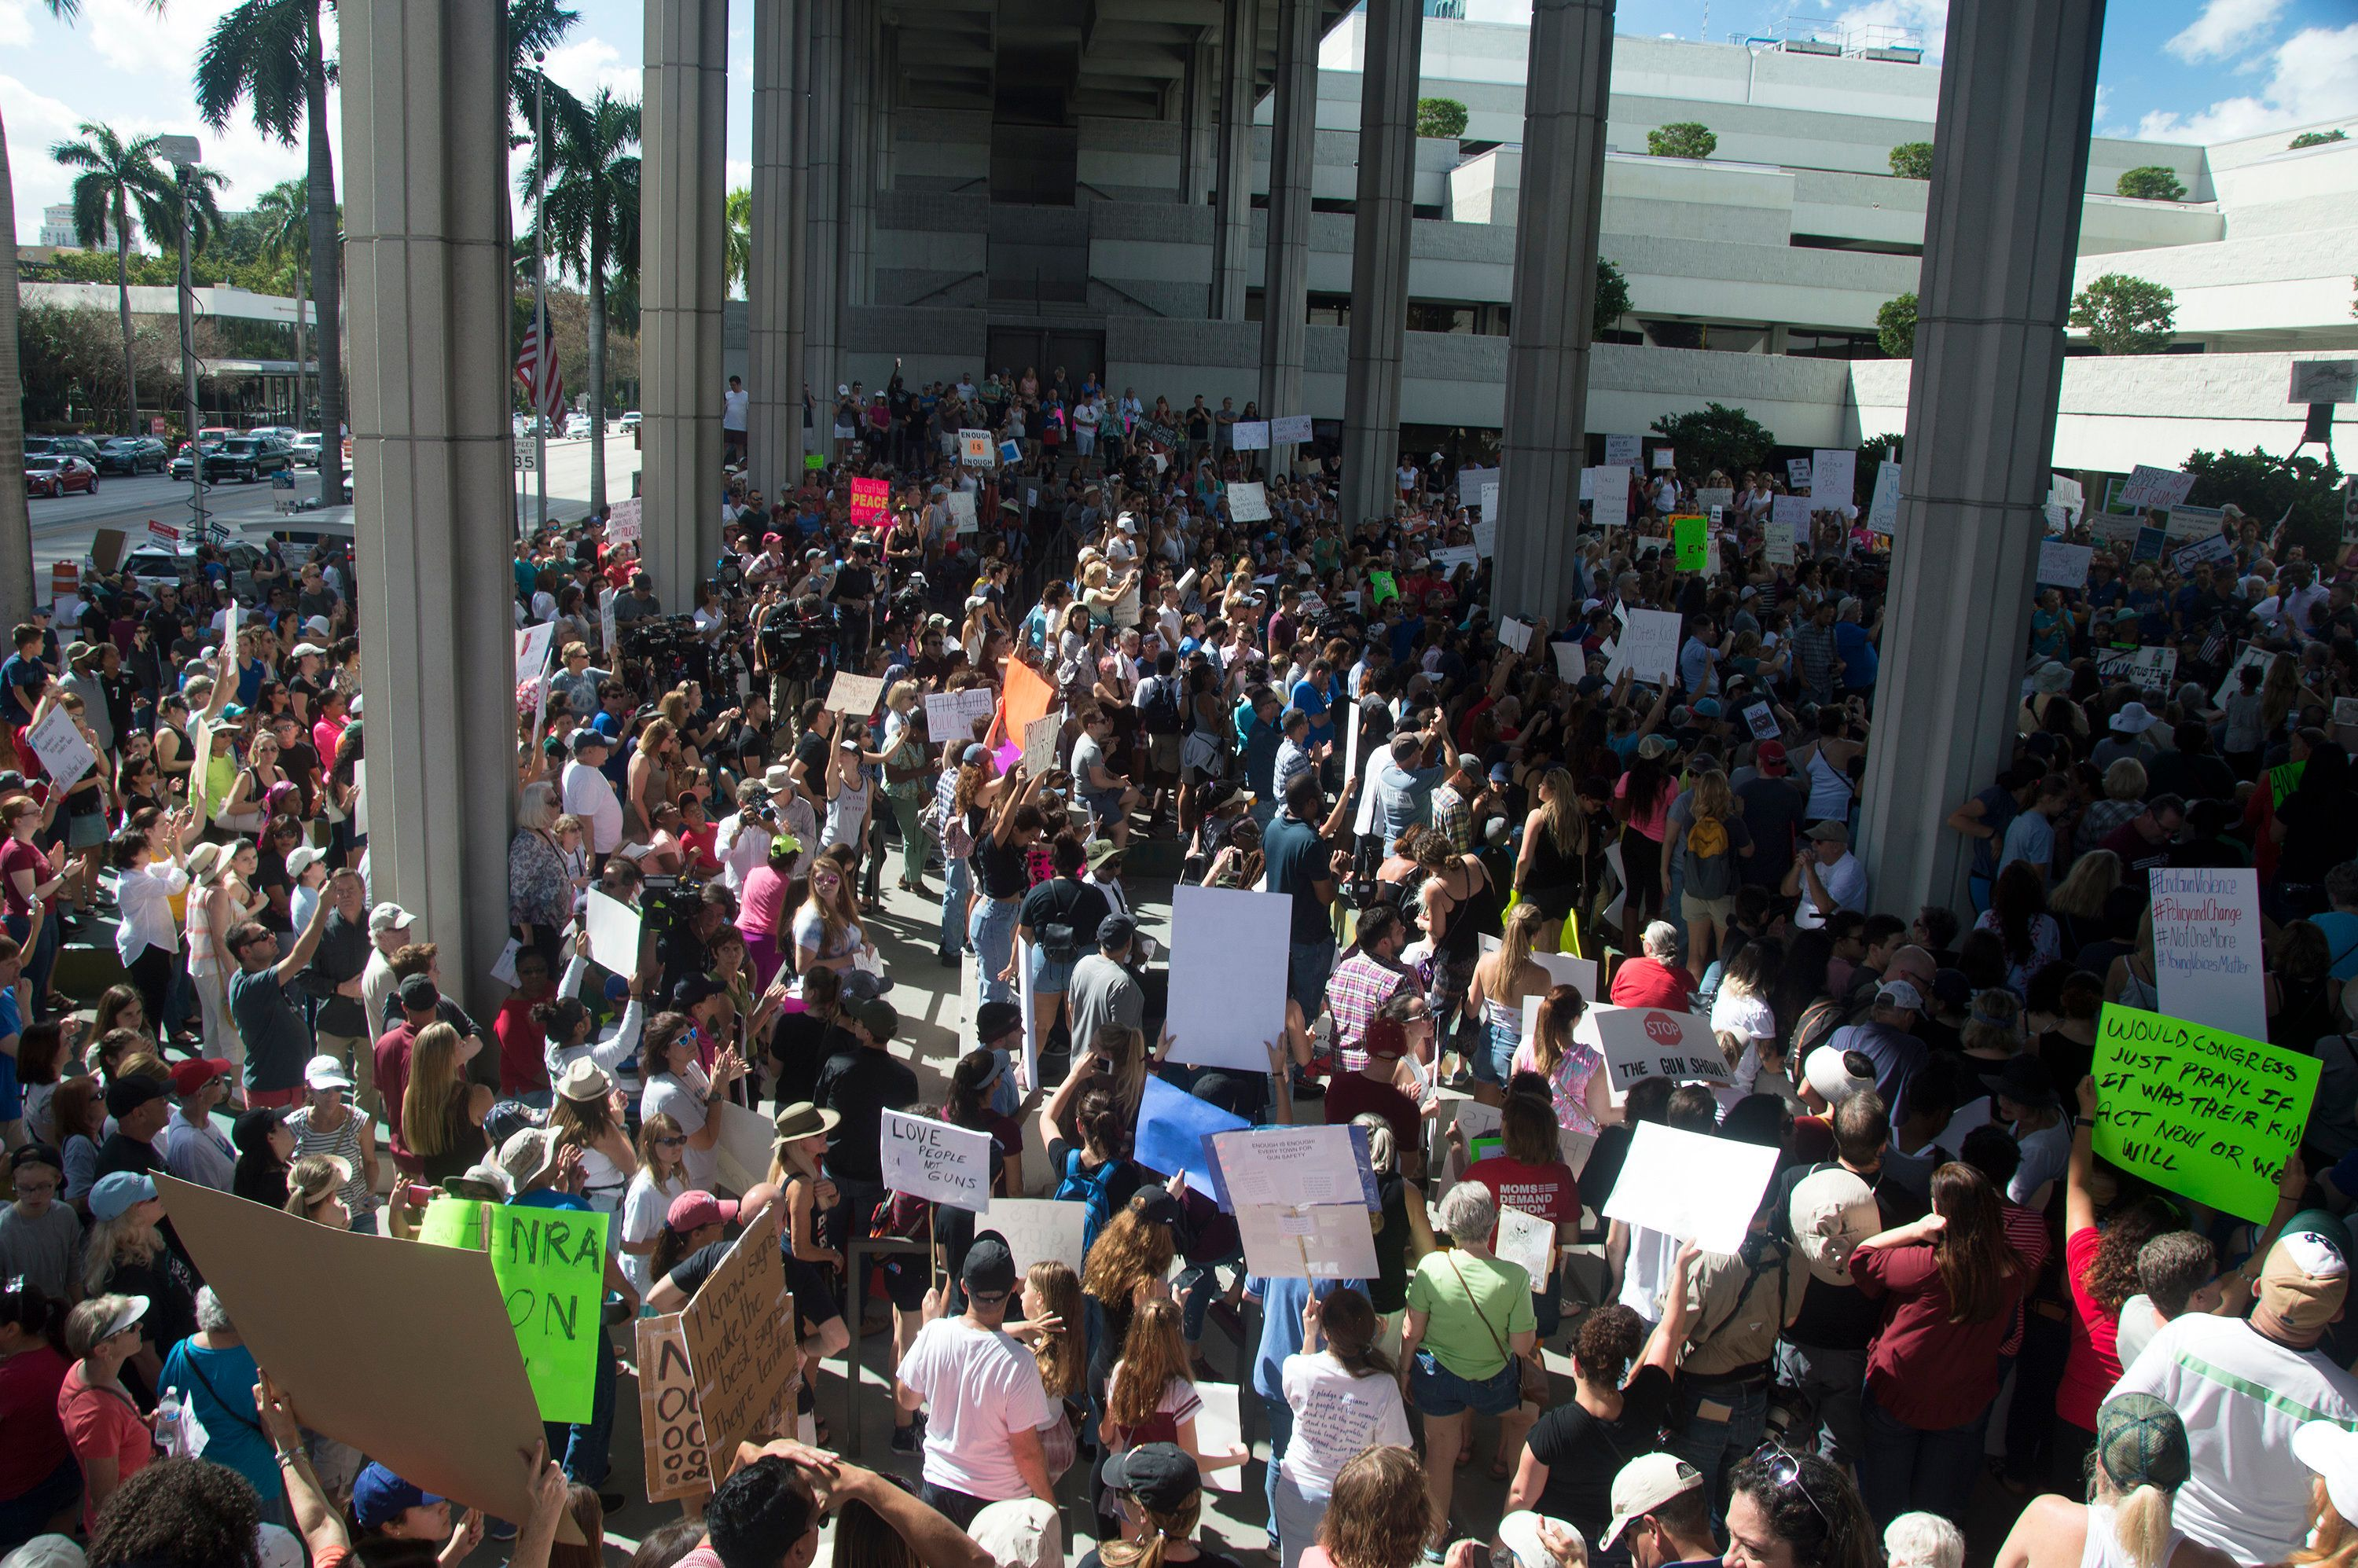 Protesters gathered at the federal courthouse in Fort Lauderdale, Florida, on Feb. 17, 2018, to demand gun control.